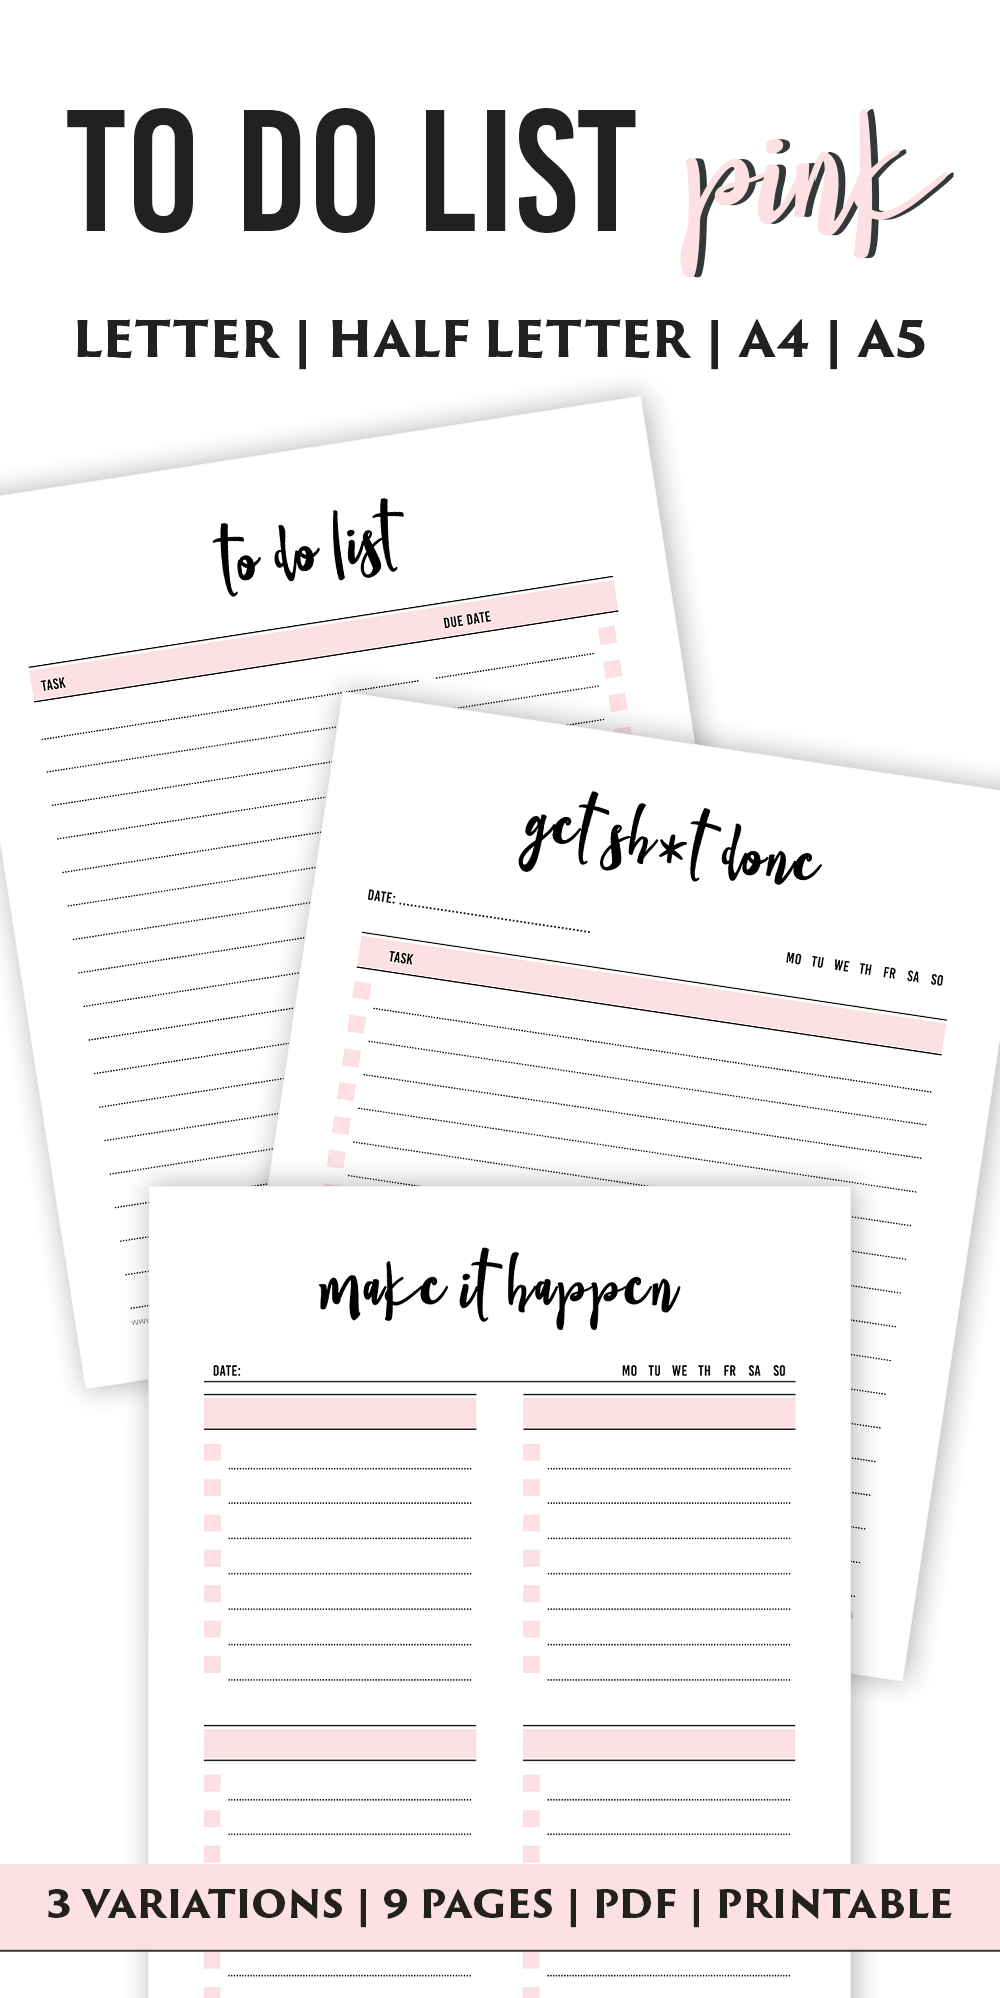 Printable Hand lettered To Do List Digital Calligraphy To Do List Daily To Do List pdf